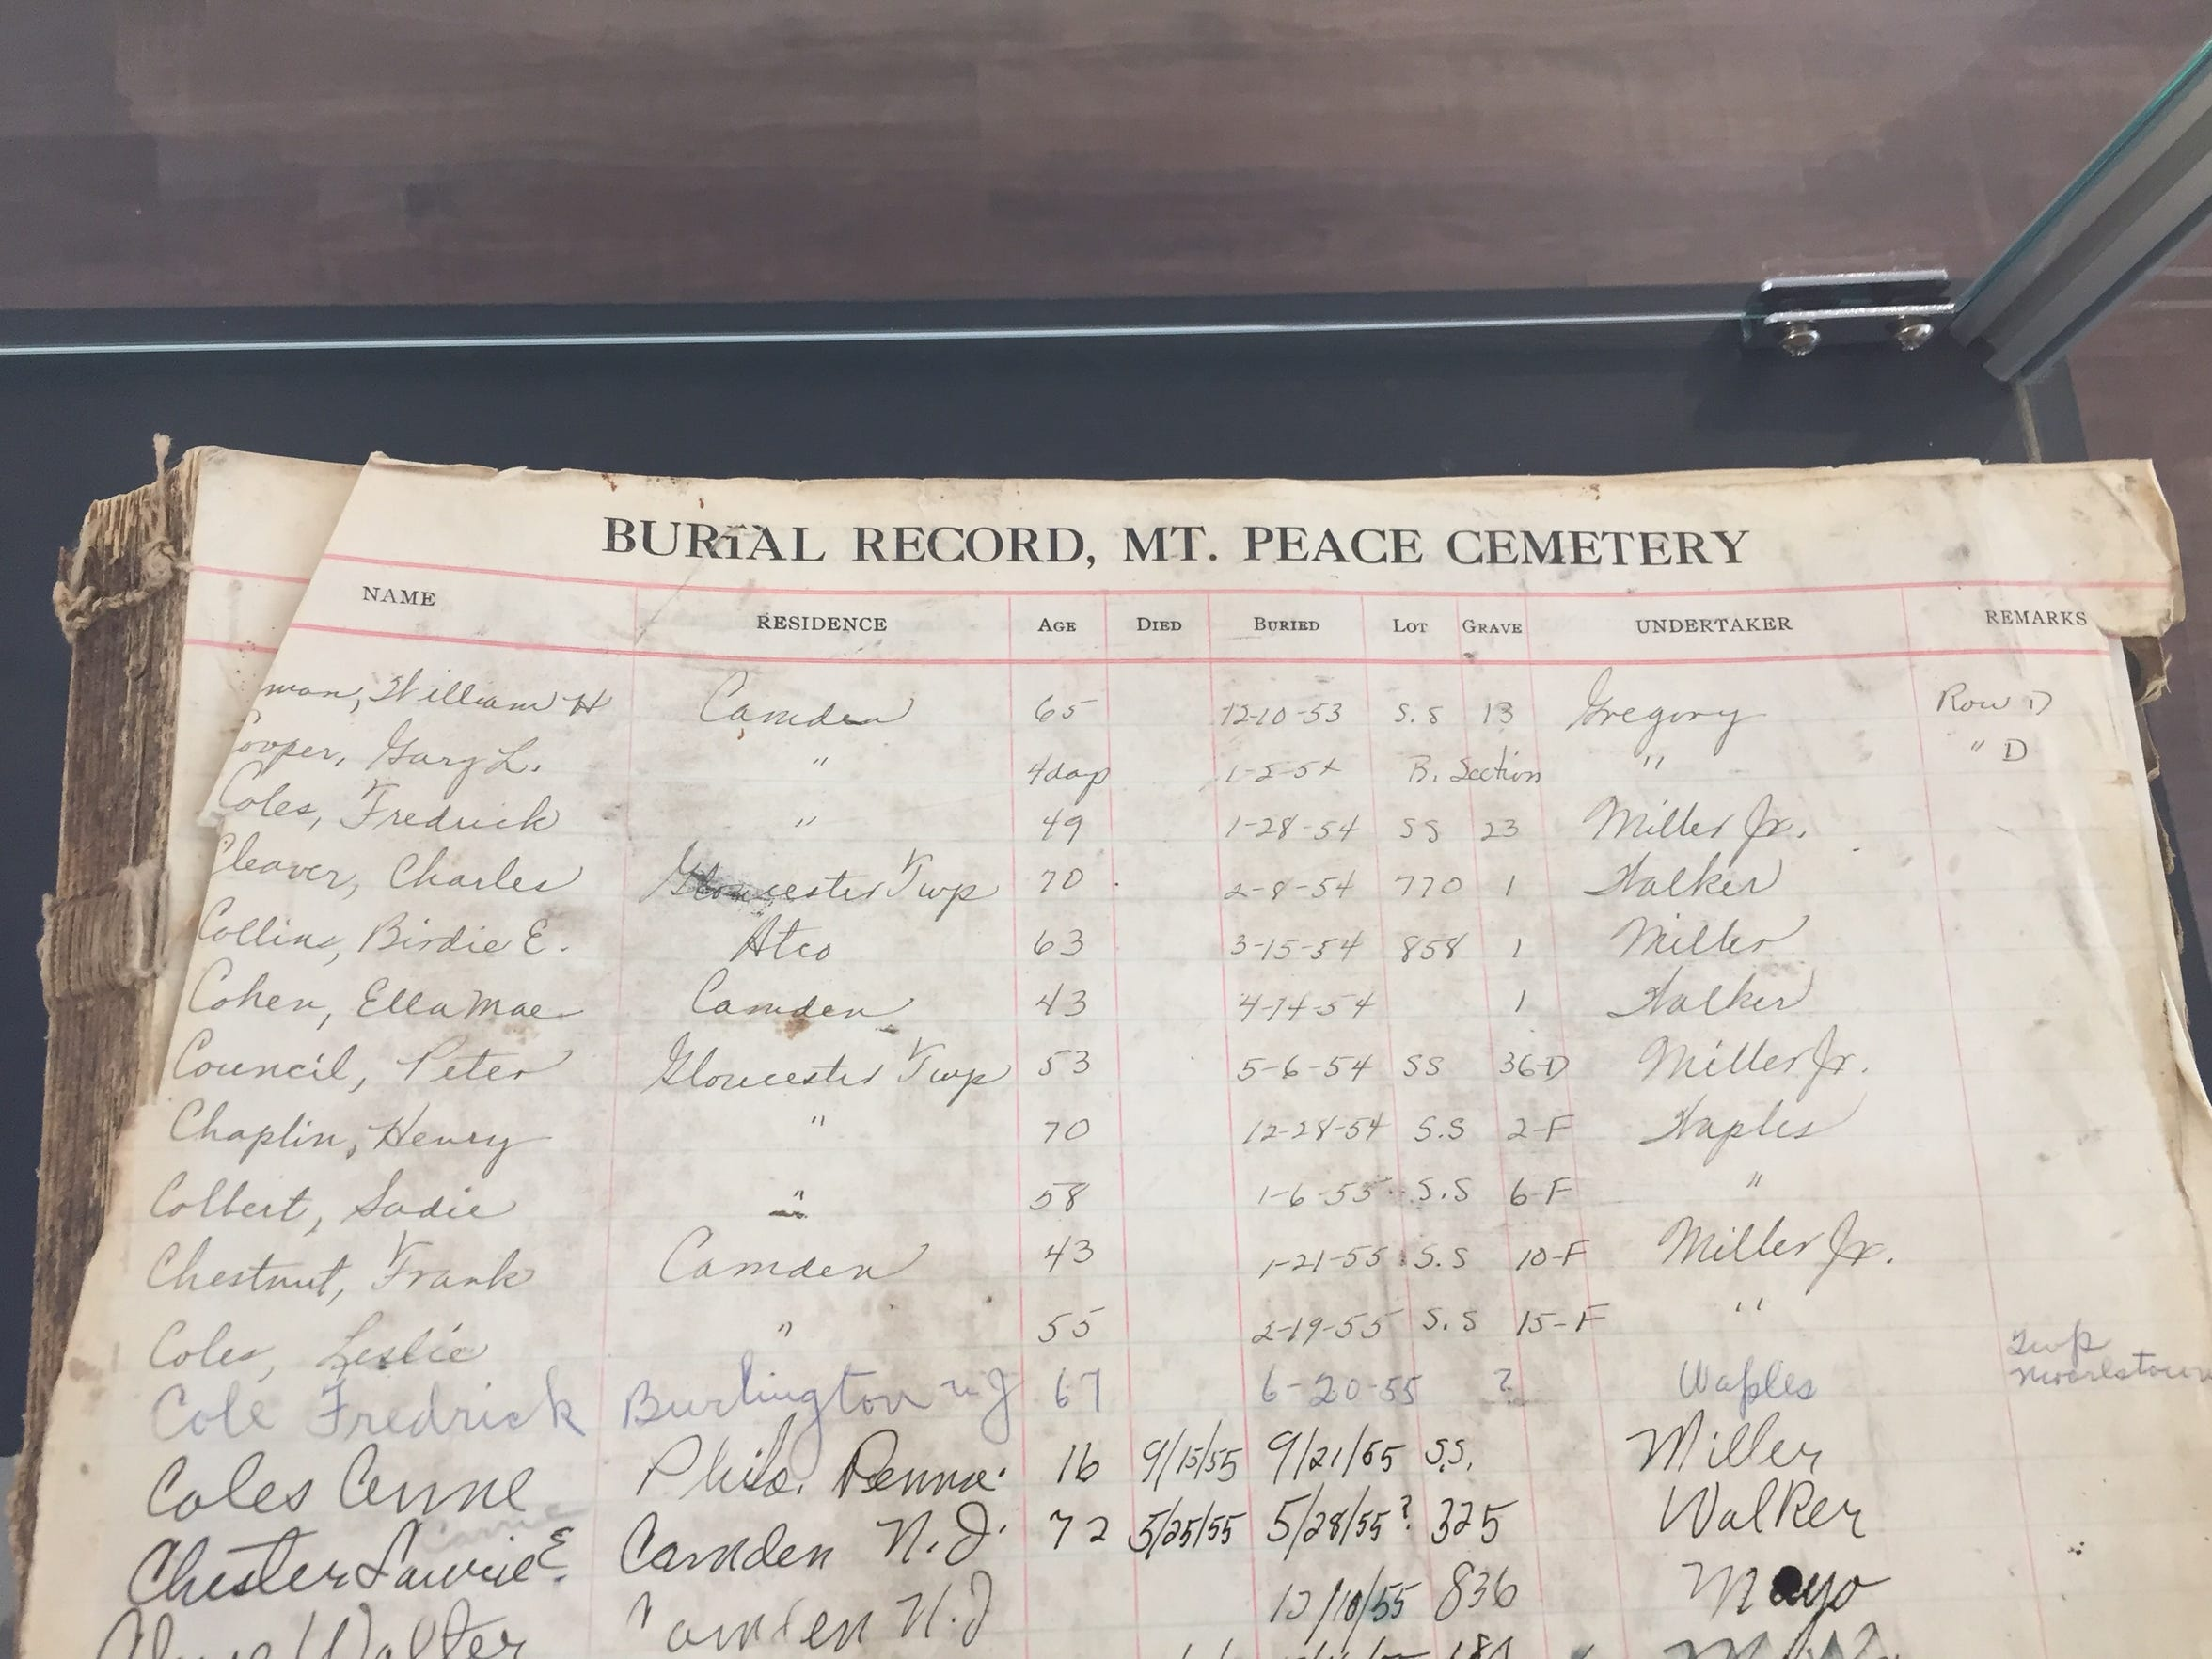 A burial register from Lawnside's Mount Peace Cemetery